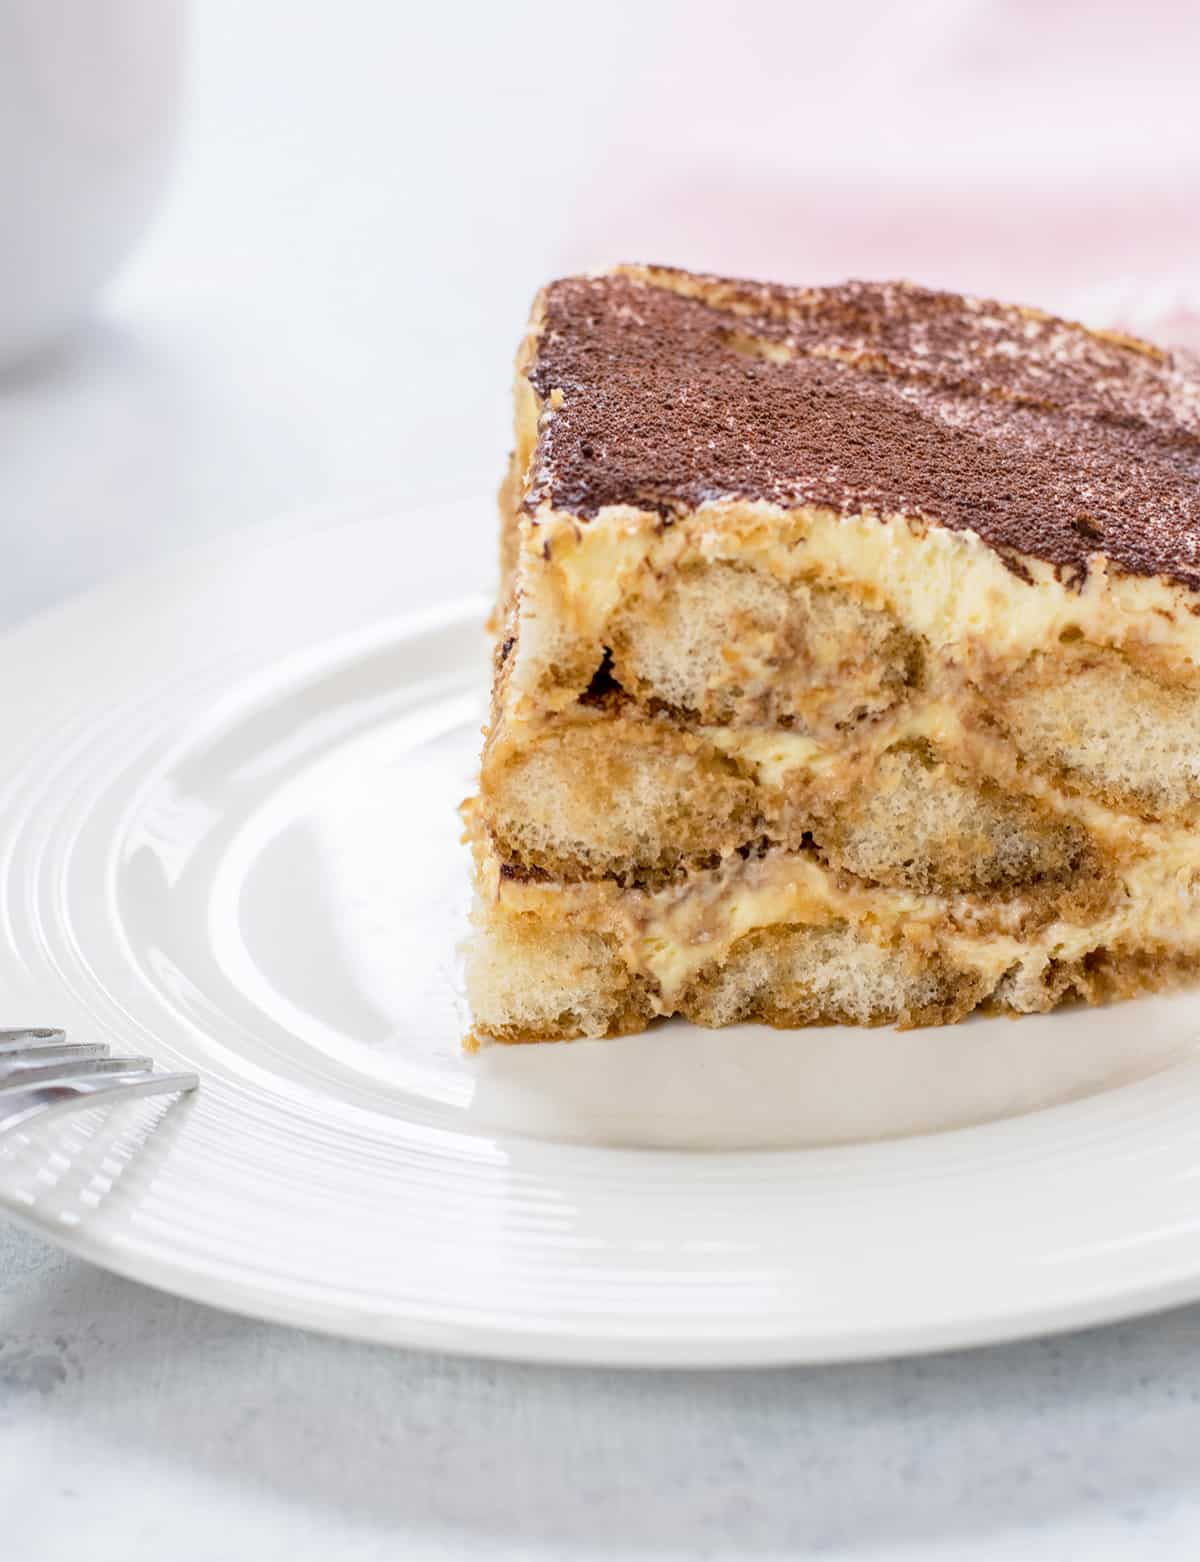 closeup of piece of layered cake topped with cocoa